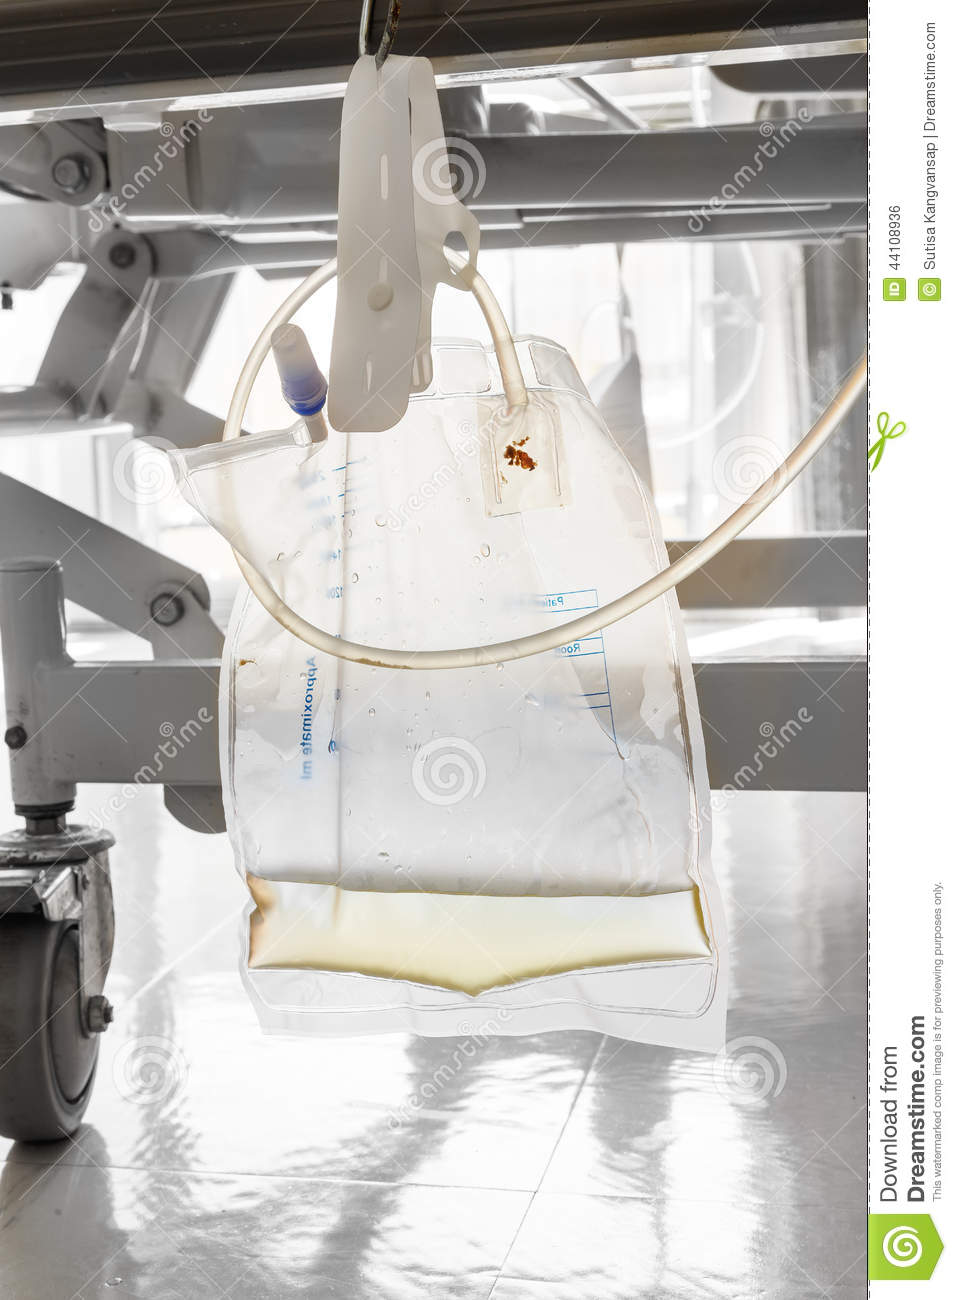 Urine Collection Bag Royalty Free Stock Image